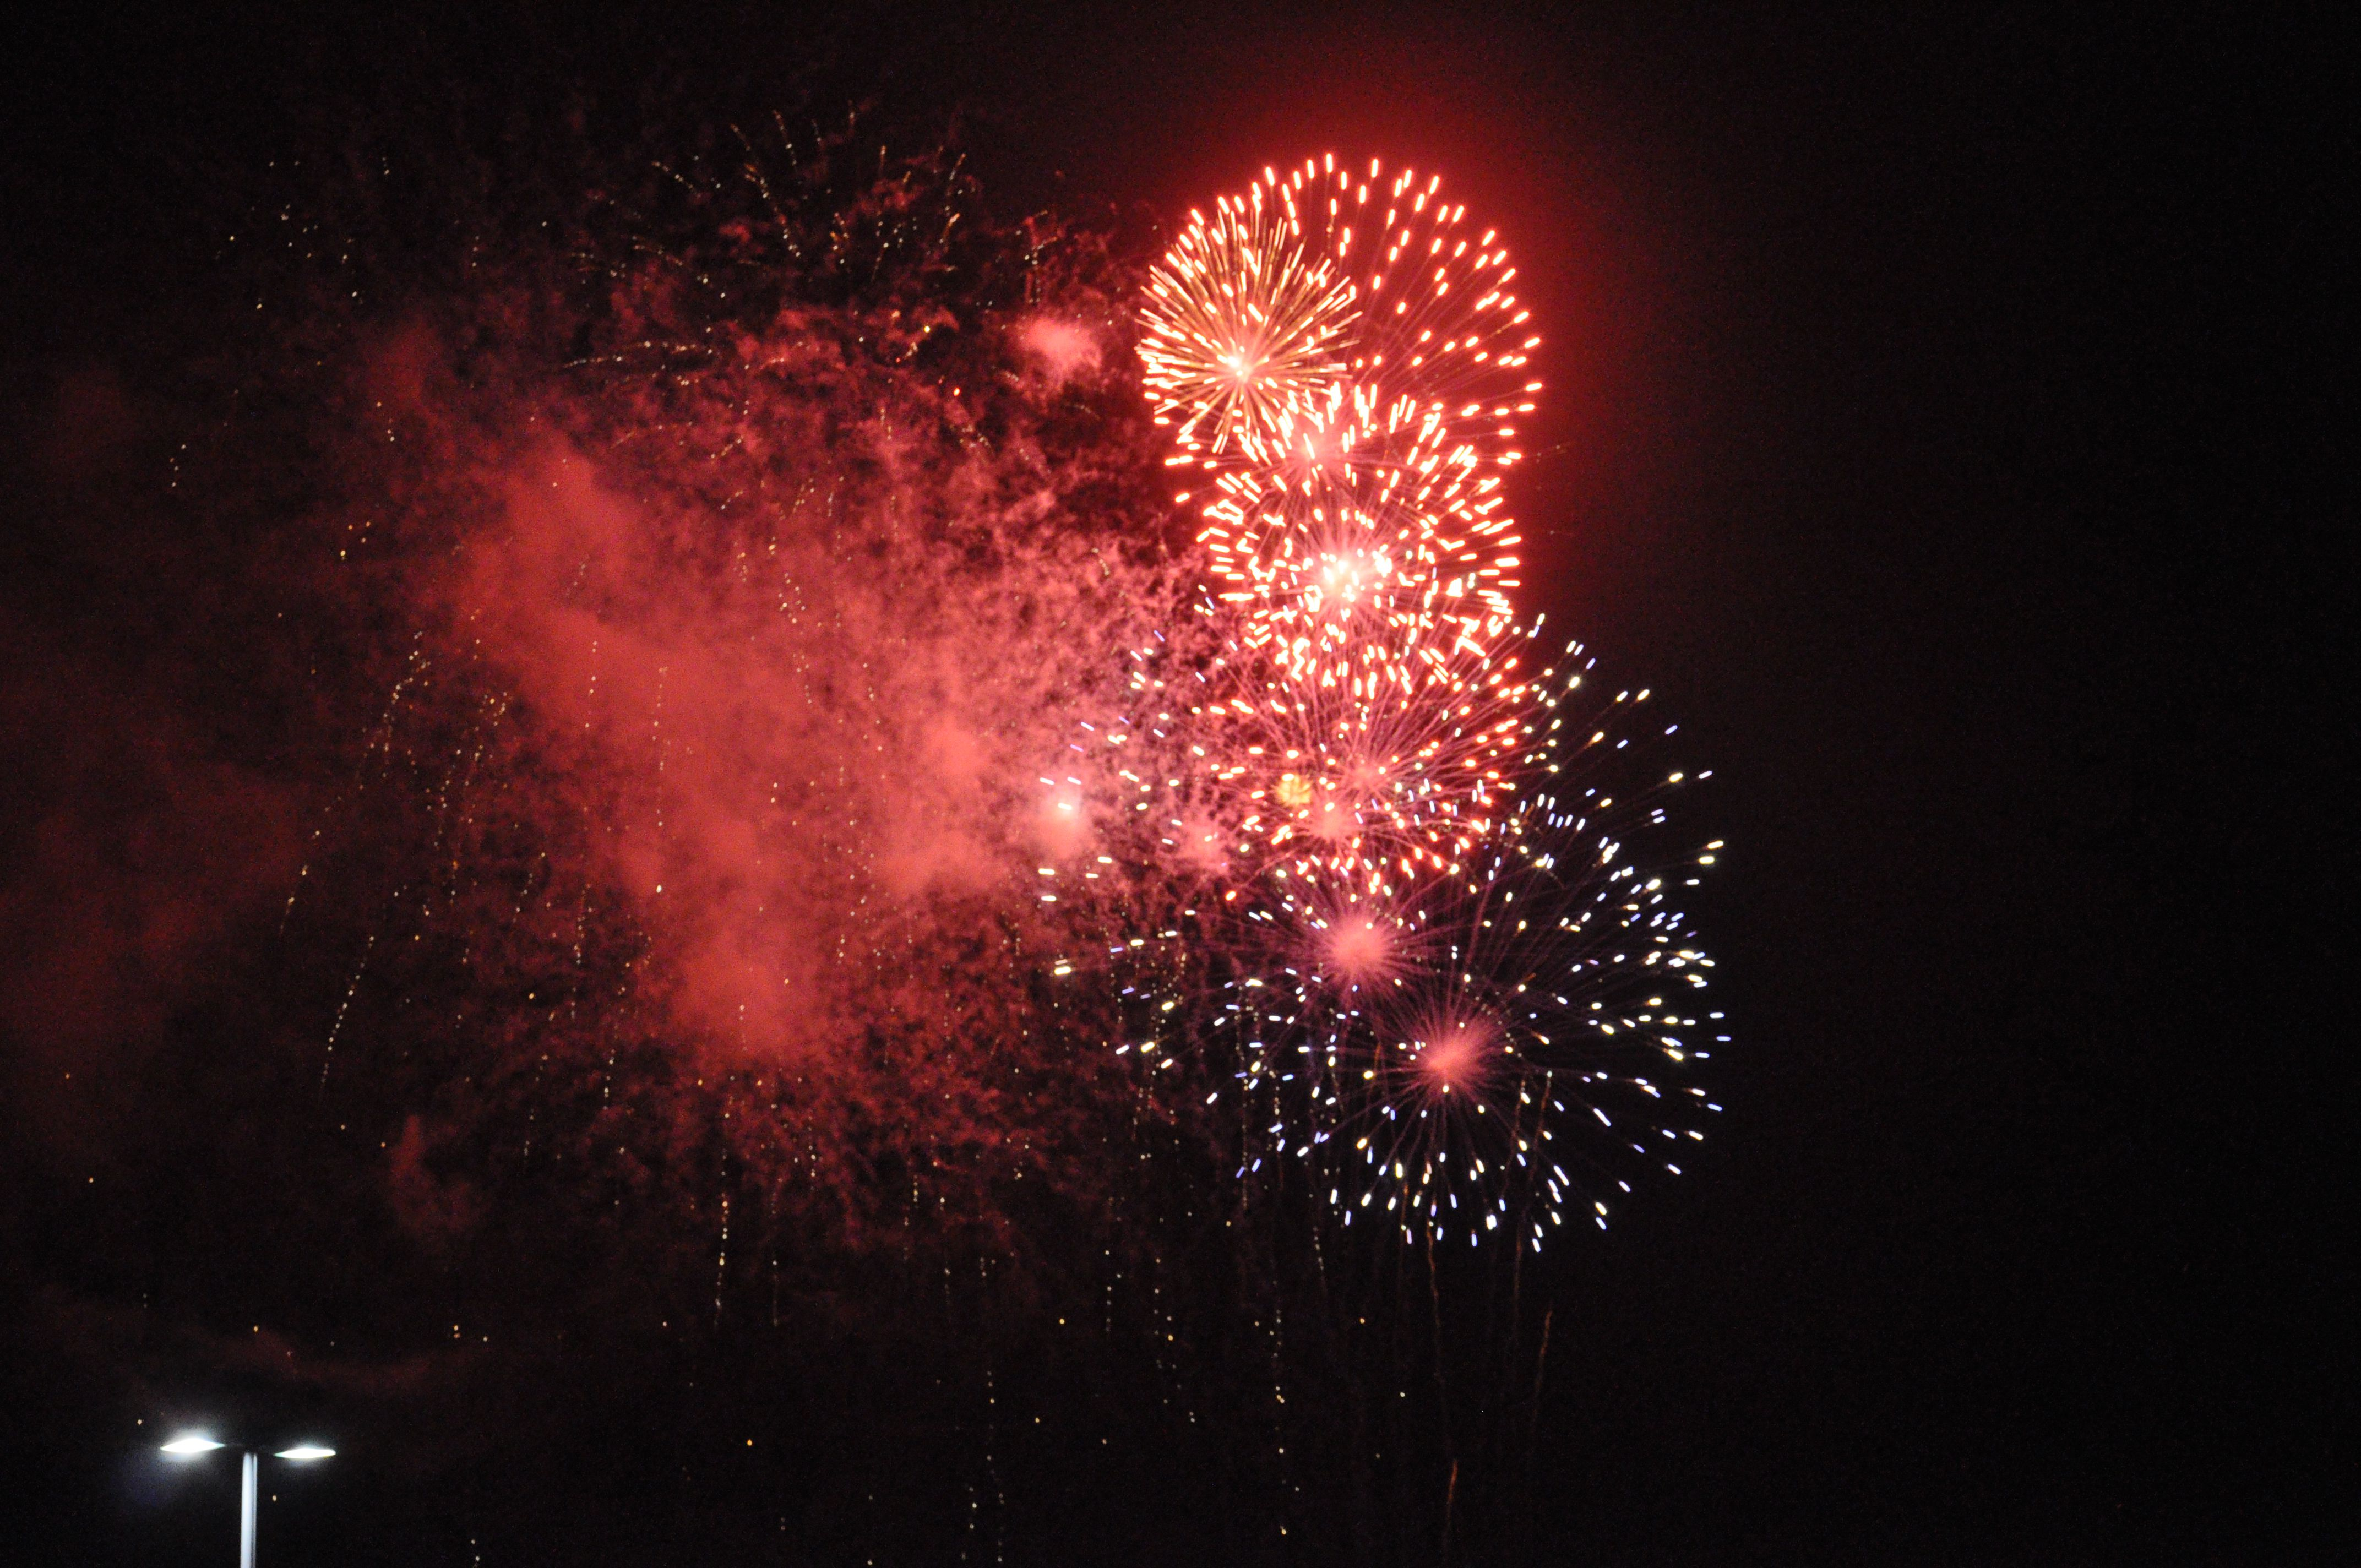 Fireworks over Lake Grapevine in Texas